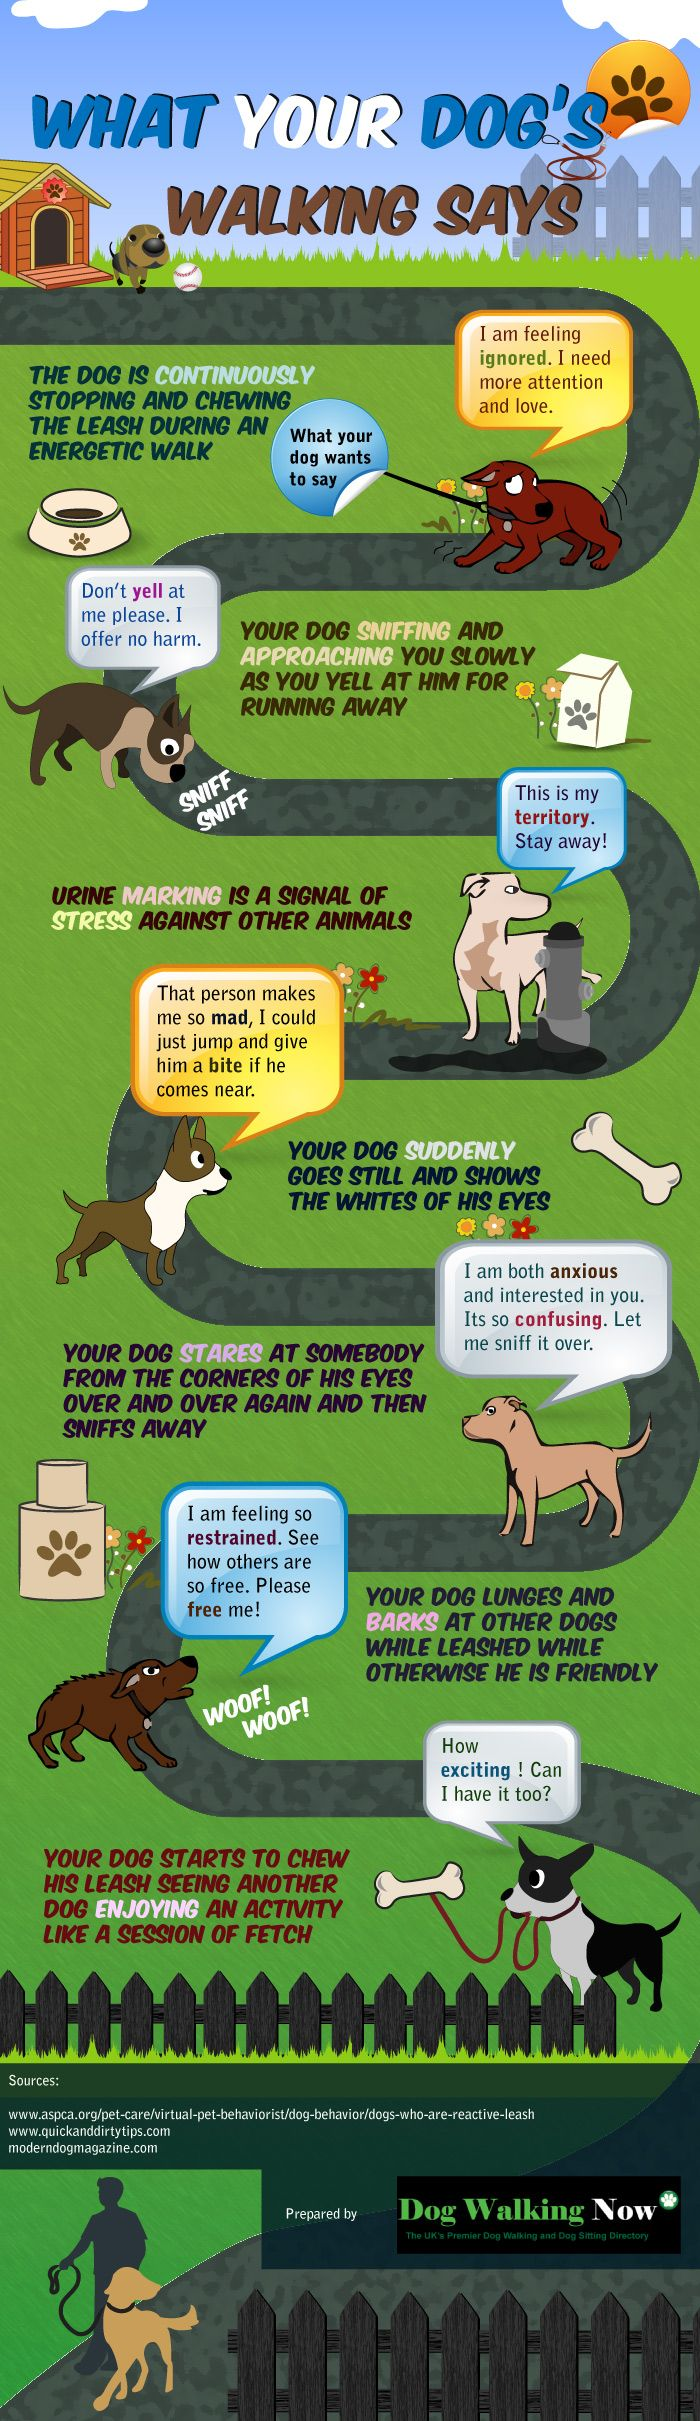 Had you ever wondered what your dog might be trying to tell you while you are out on your walks? Now you can know!